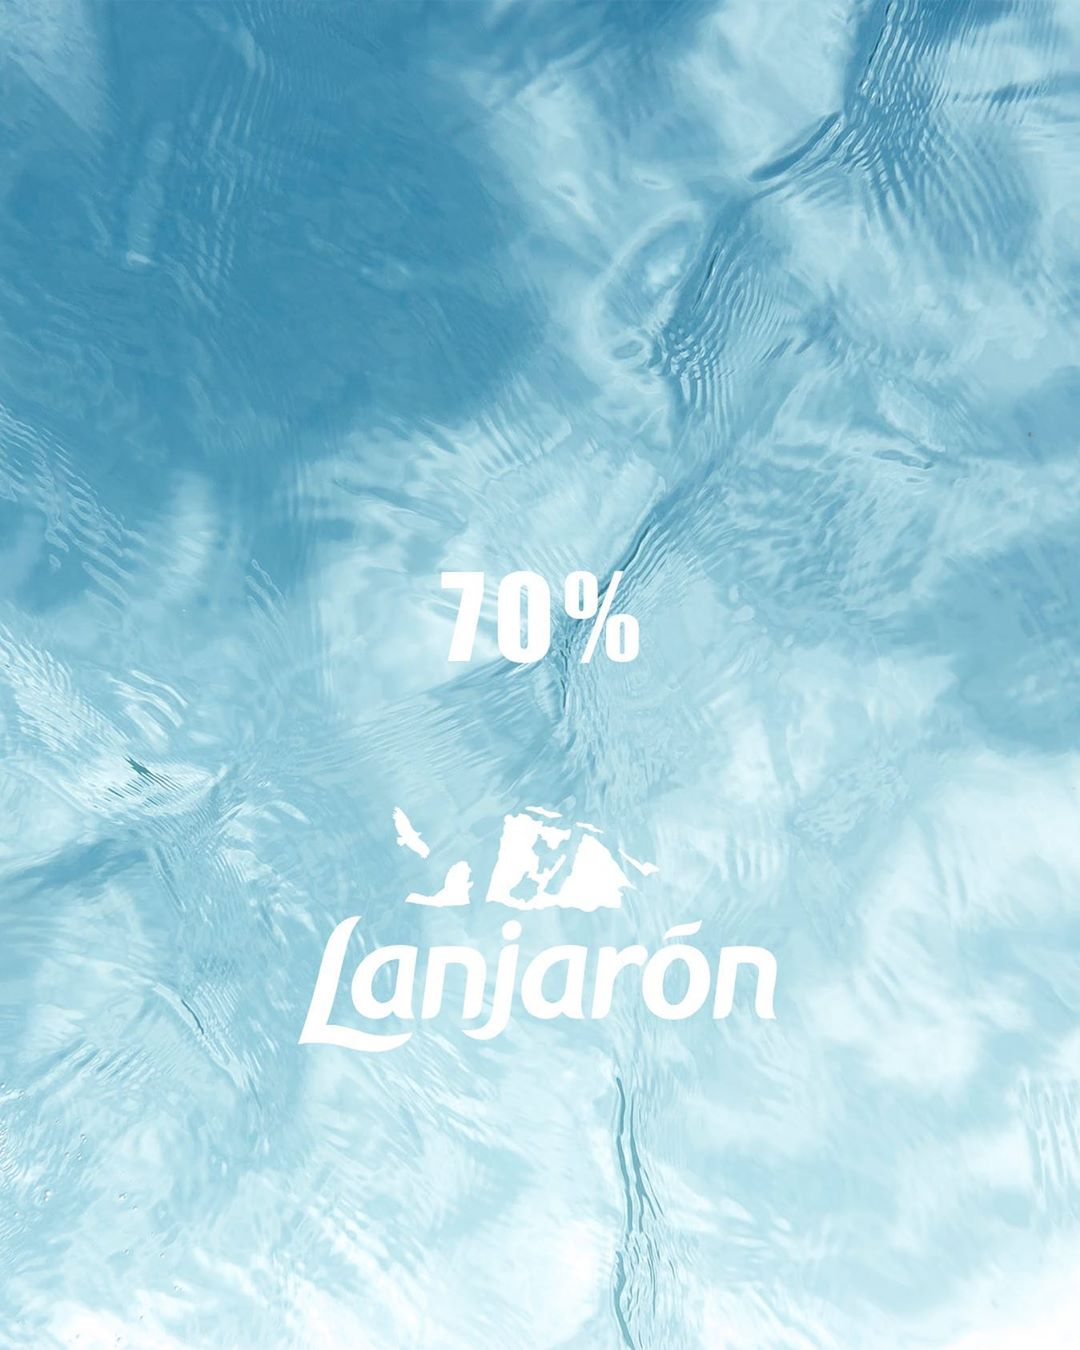 Today I learned 70% of the human brain is water! 💧 🧠 #Lanjaronmena